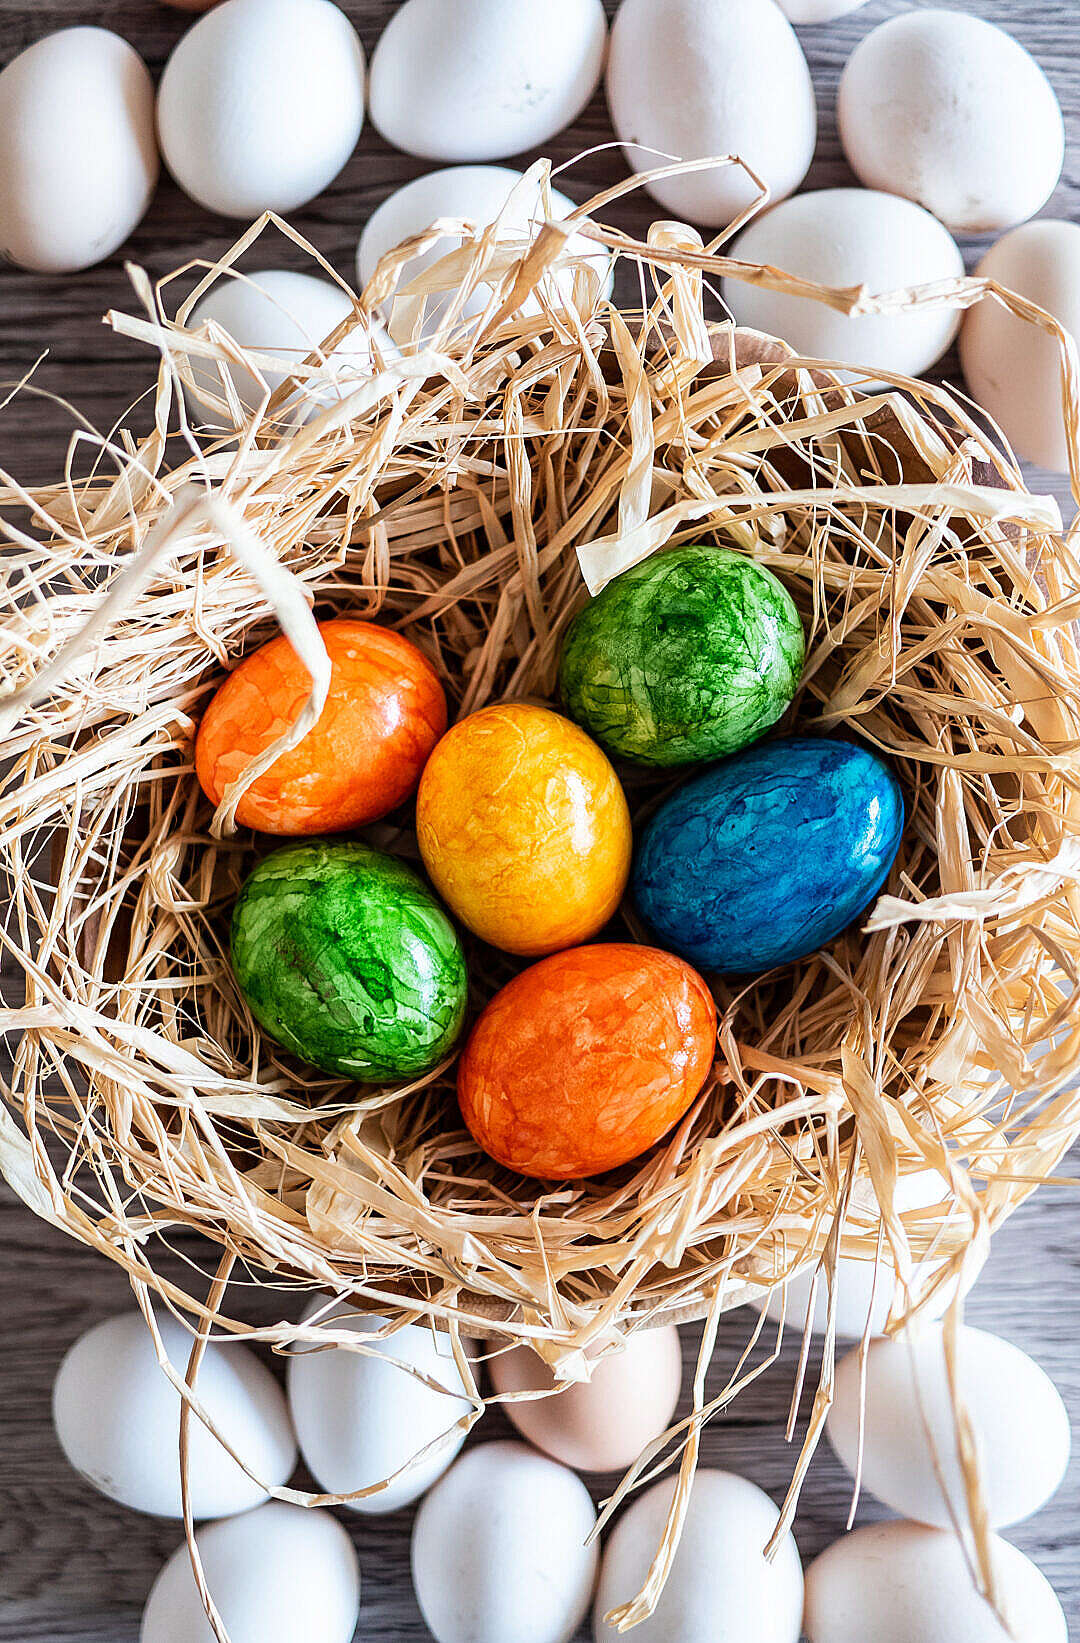 Download White Eggs and Colored Easter Eggs Vertical FREE Stock Photo